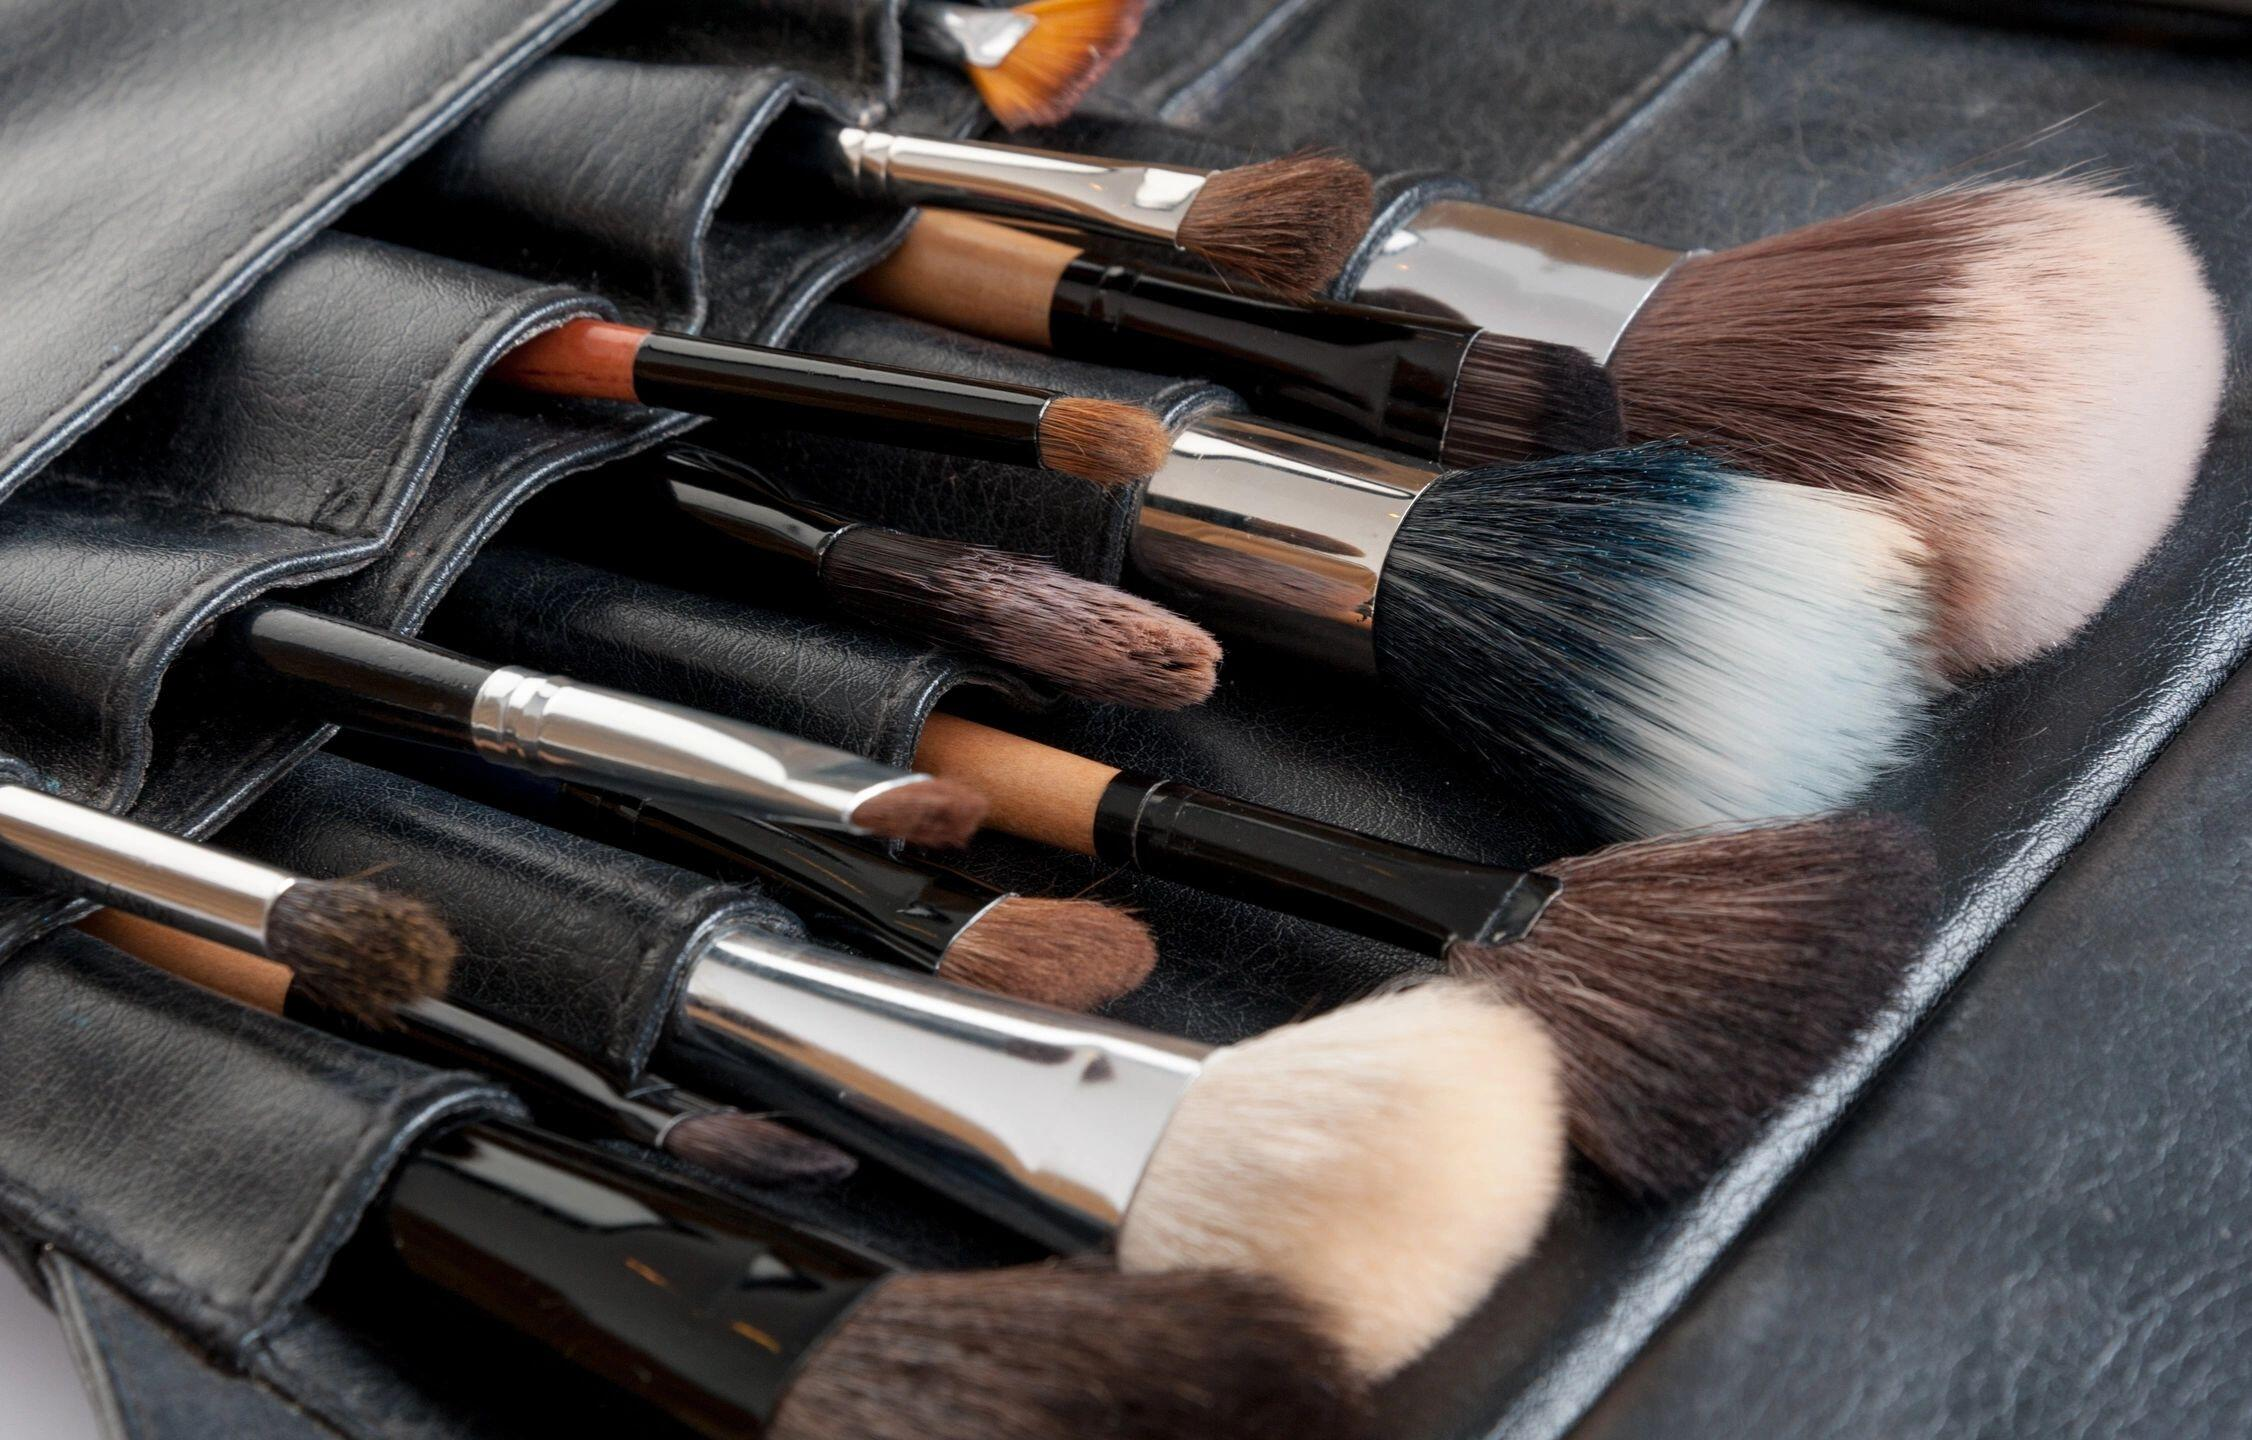 Cosmetics: How Can I Declutter and Organize My Make Up?